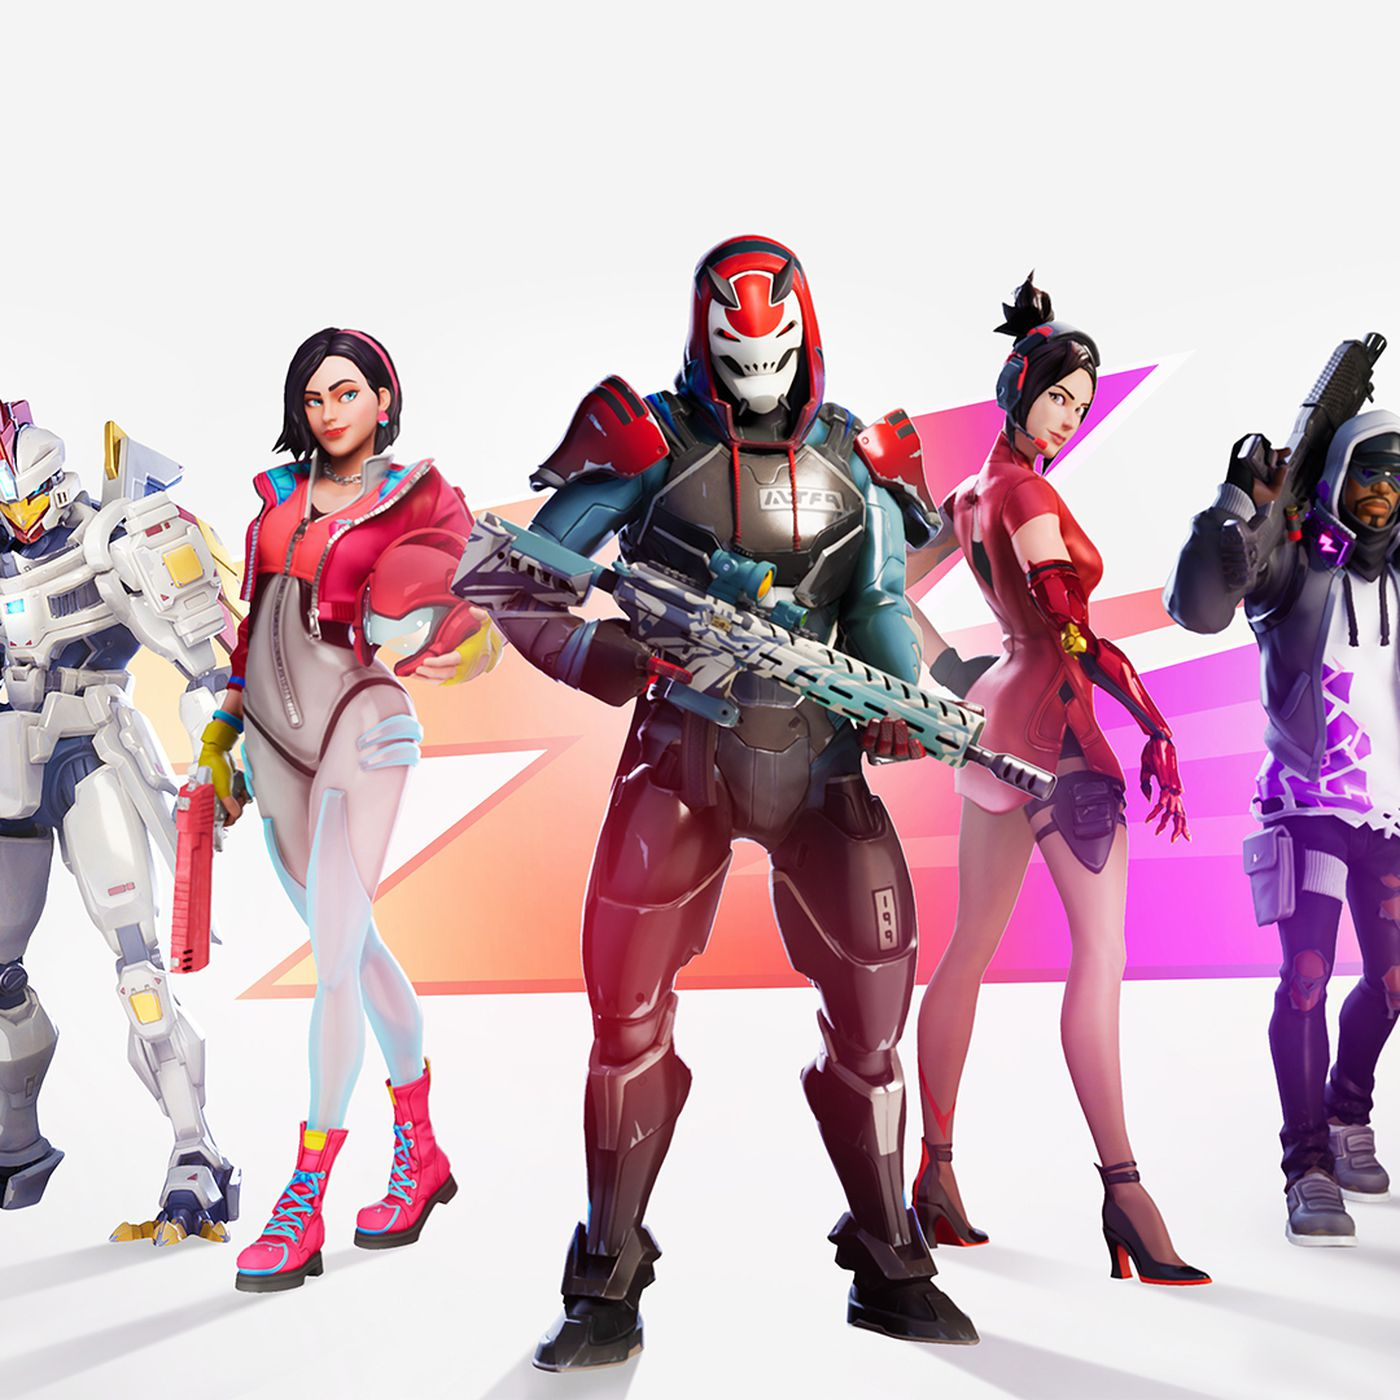 Fortnite season 9 patch notes and map changes - Polygon